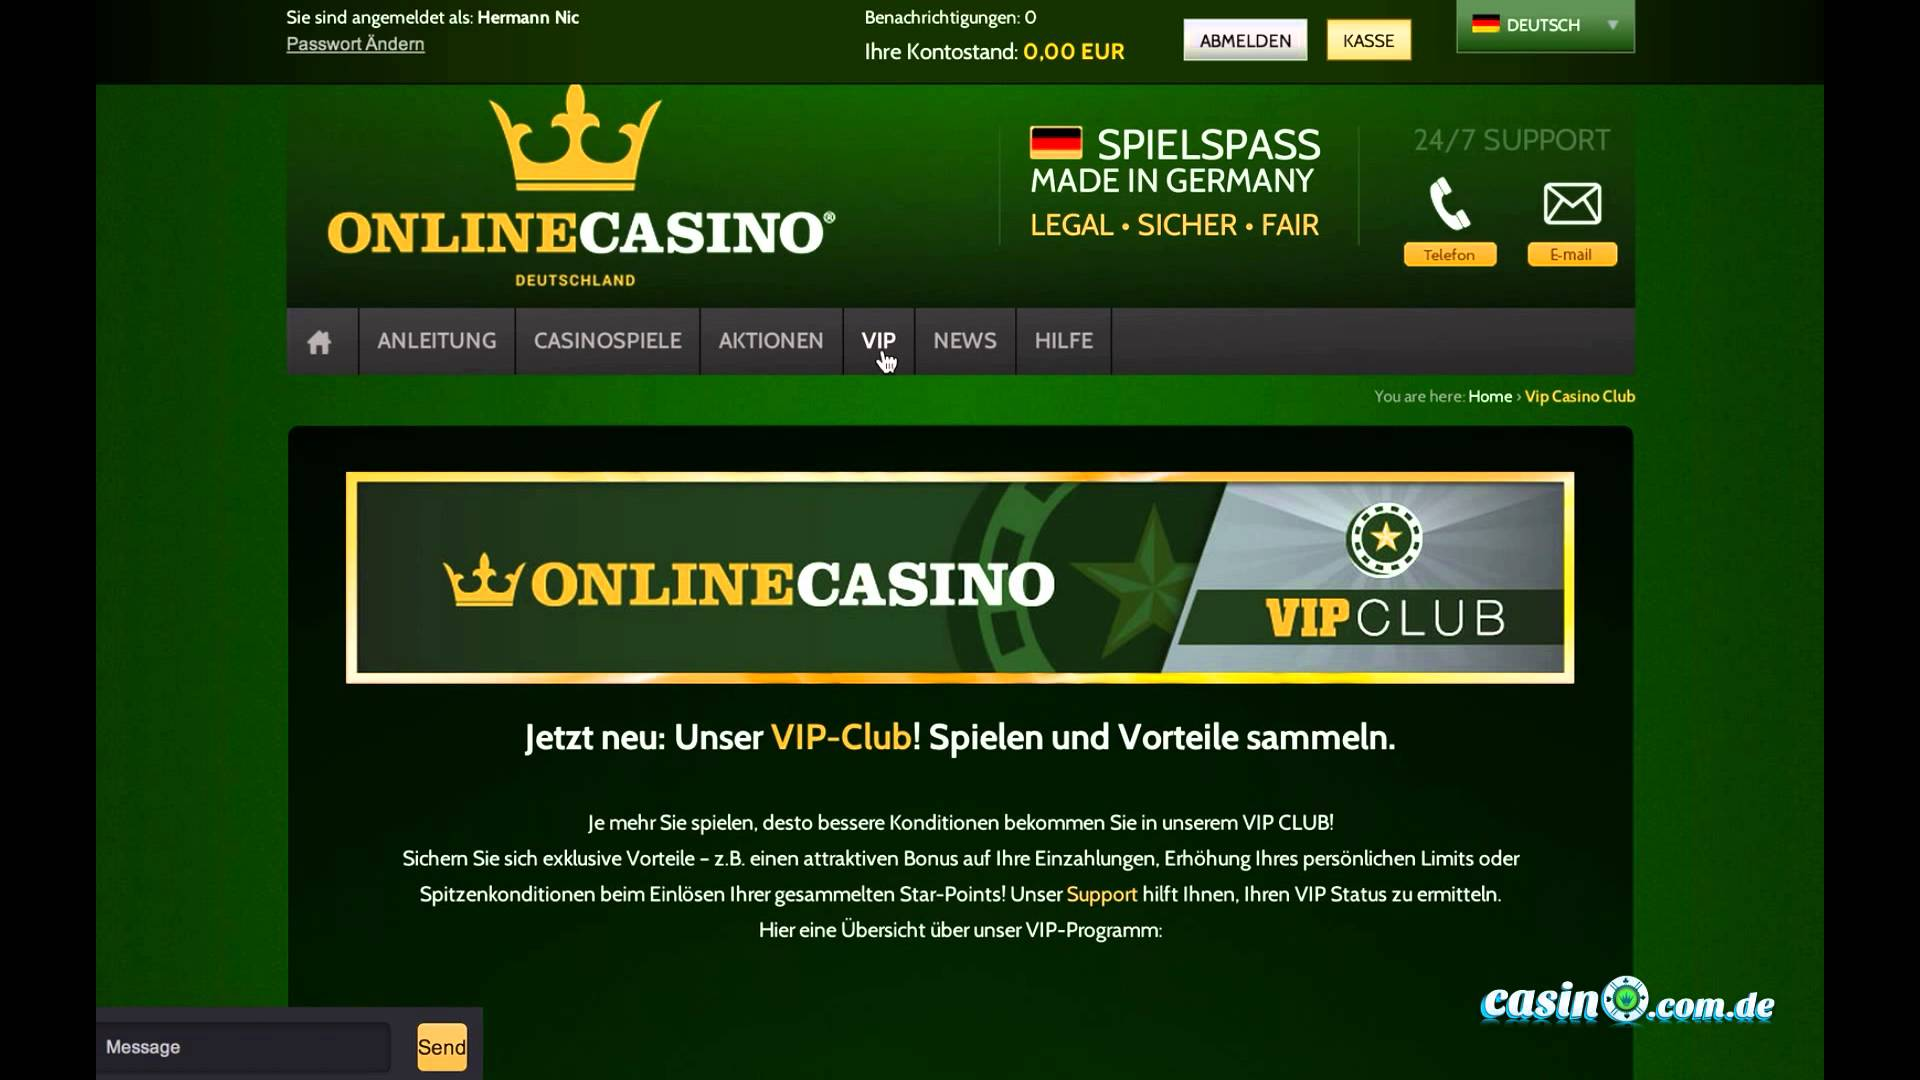 internet casino online casinos deutschland